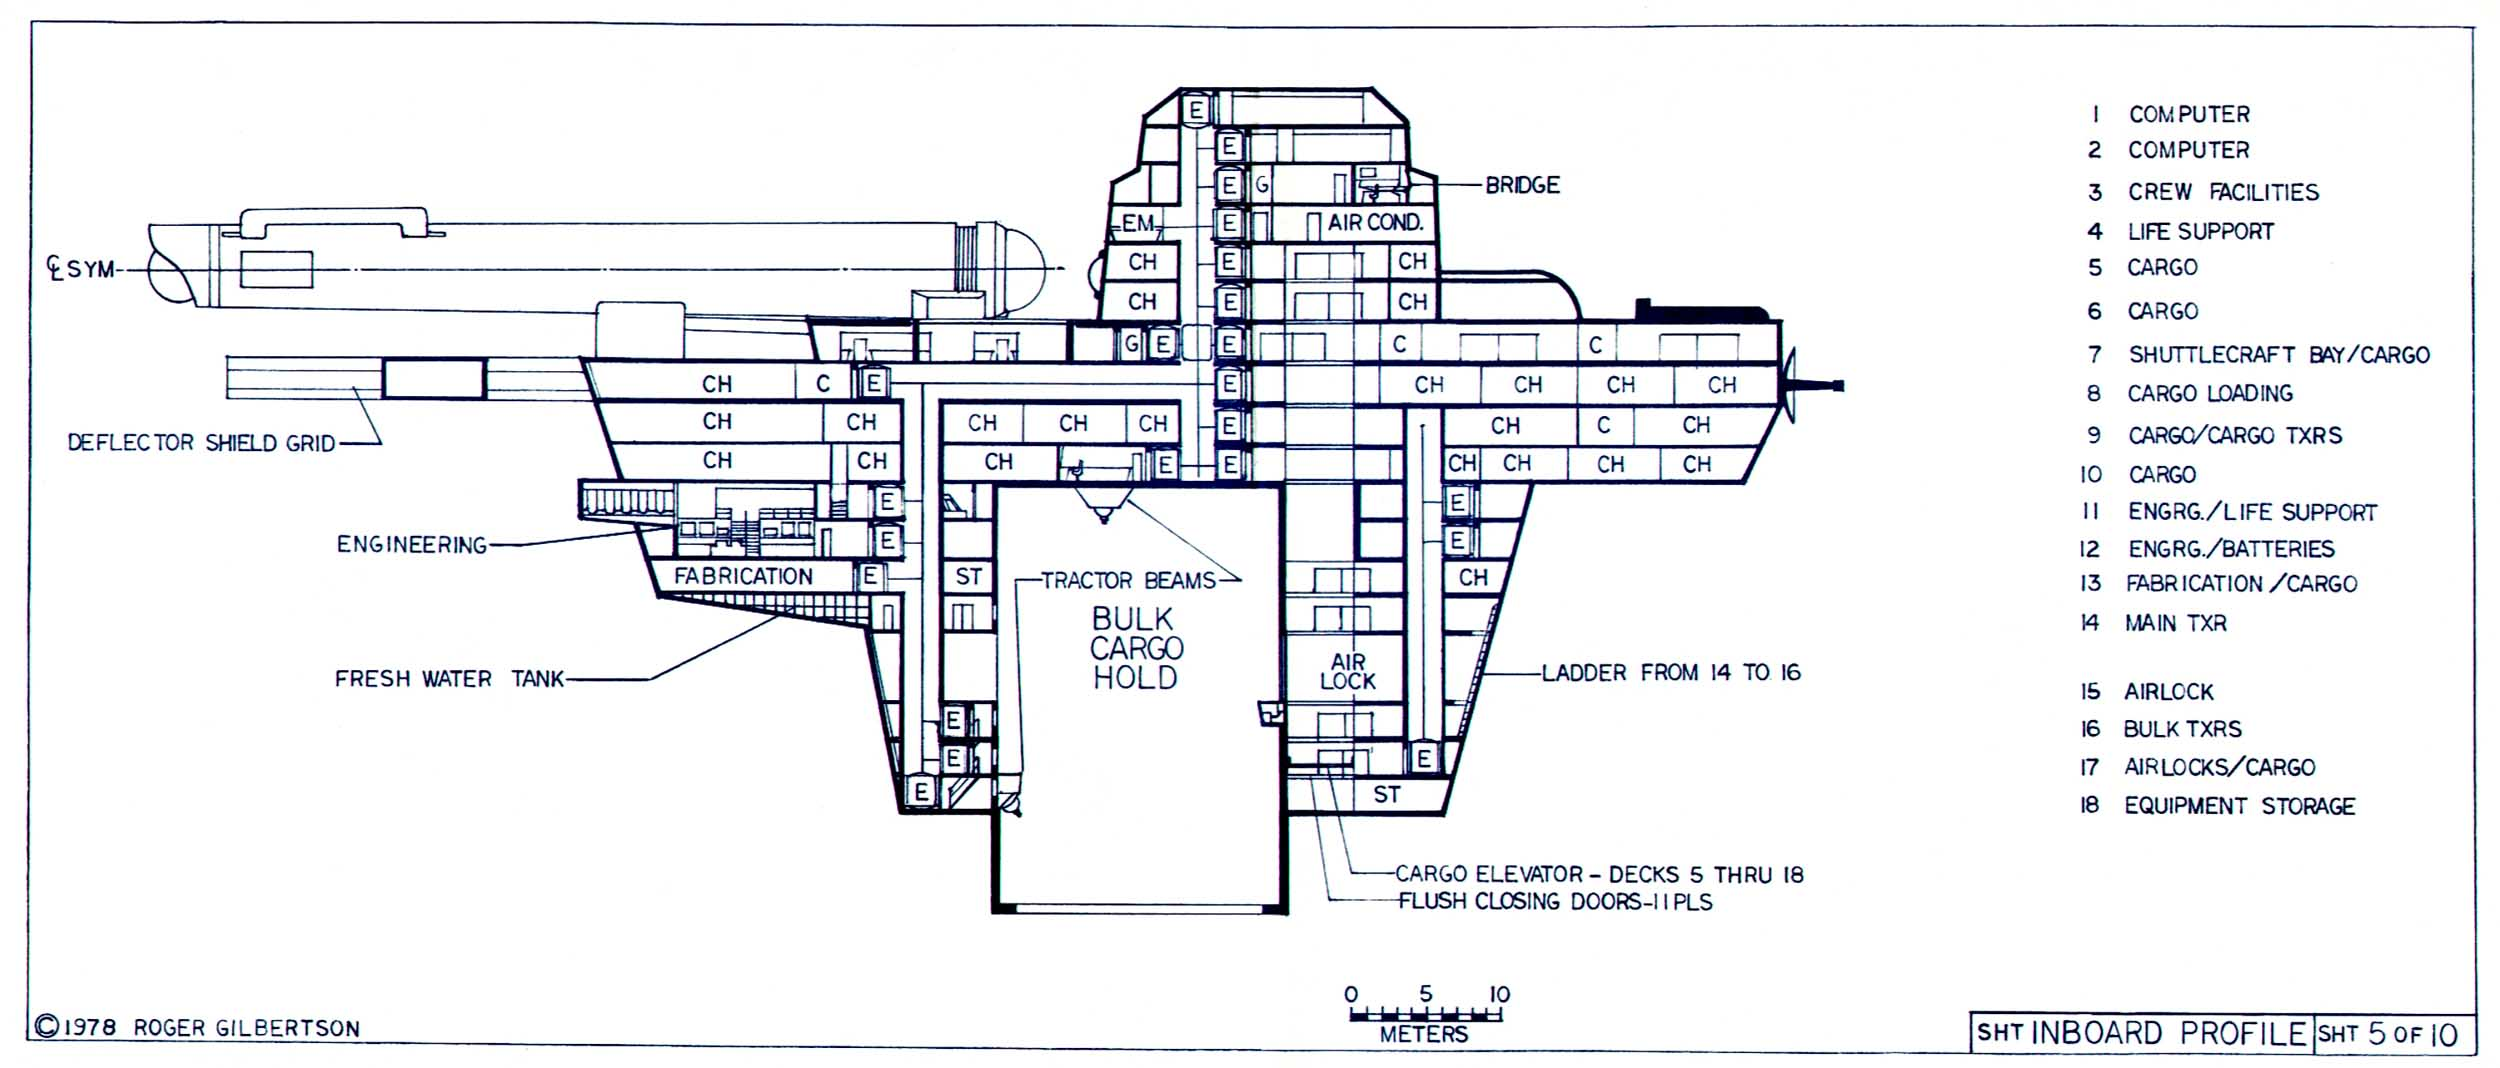 Cargo Drawing At Free For Personal Use Craft Wiring Diagram 2500x1068 Star Trek Blueprints General Plans Mk Xii Robot Ship